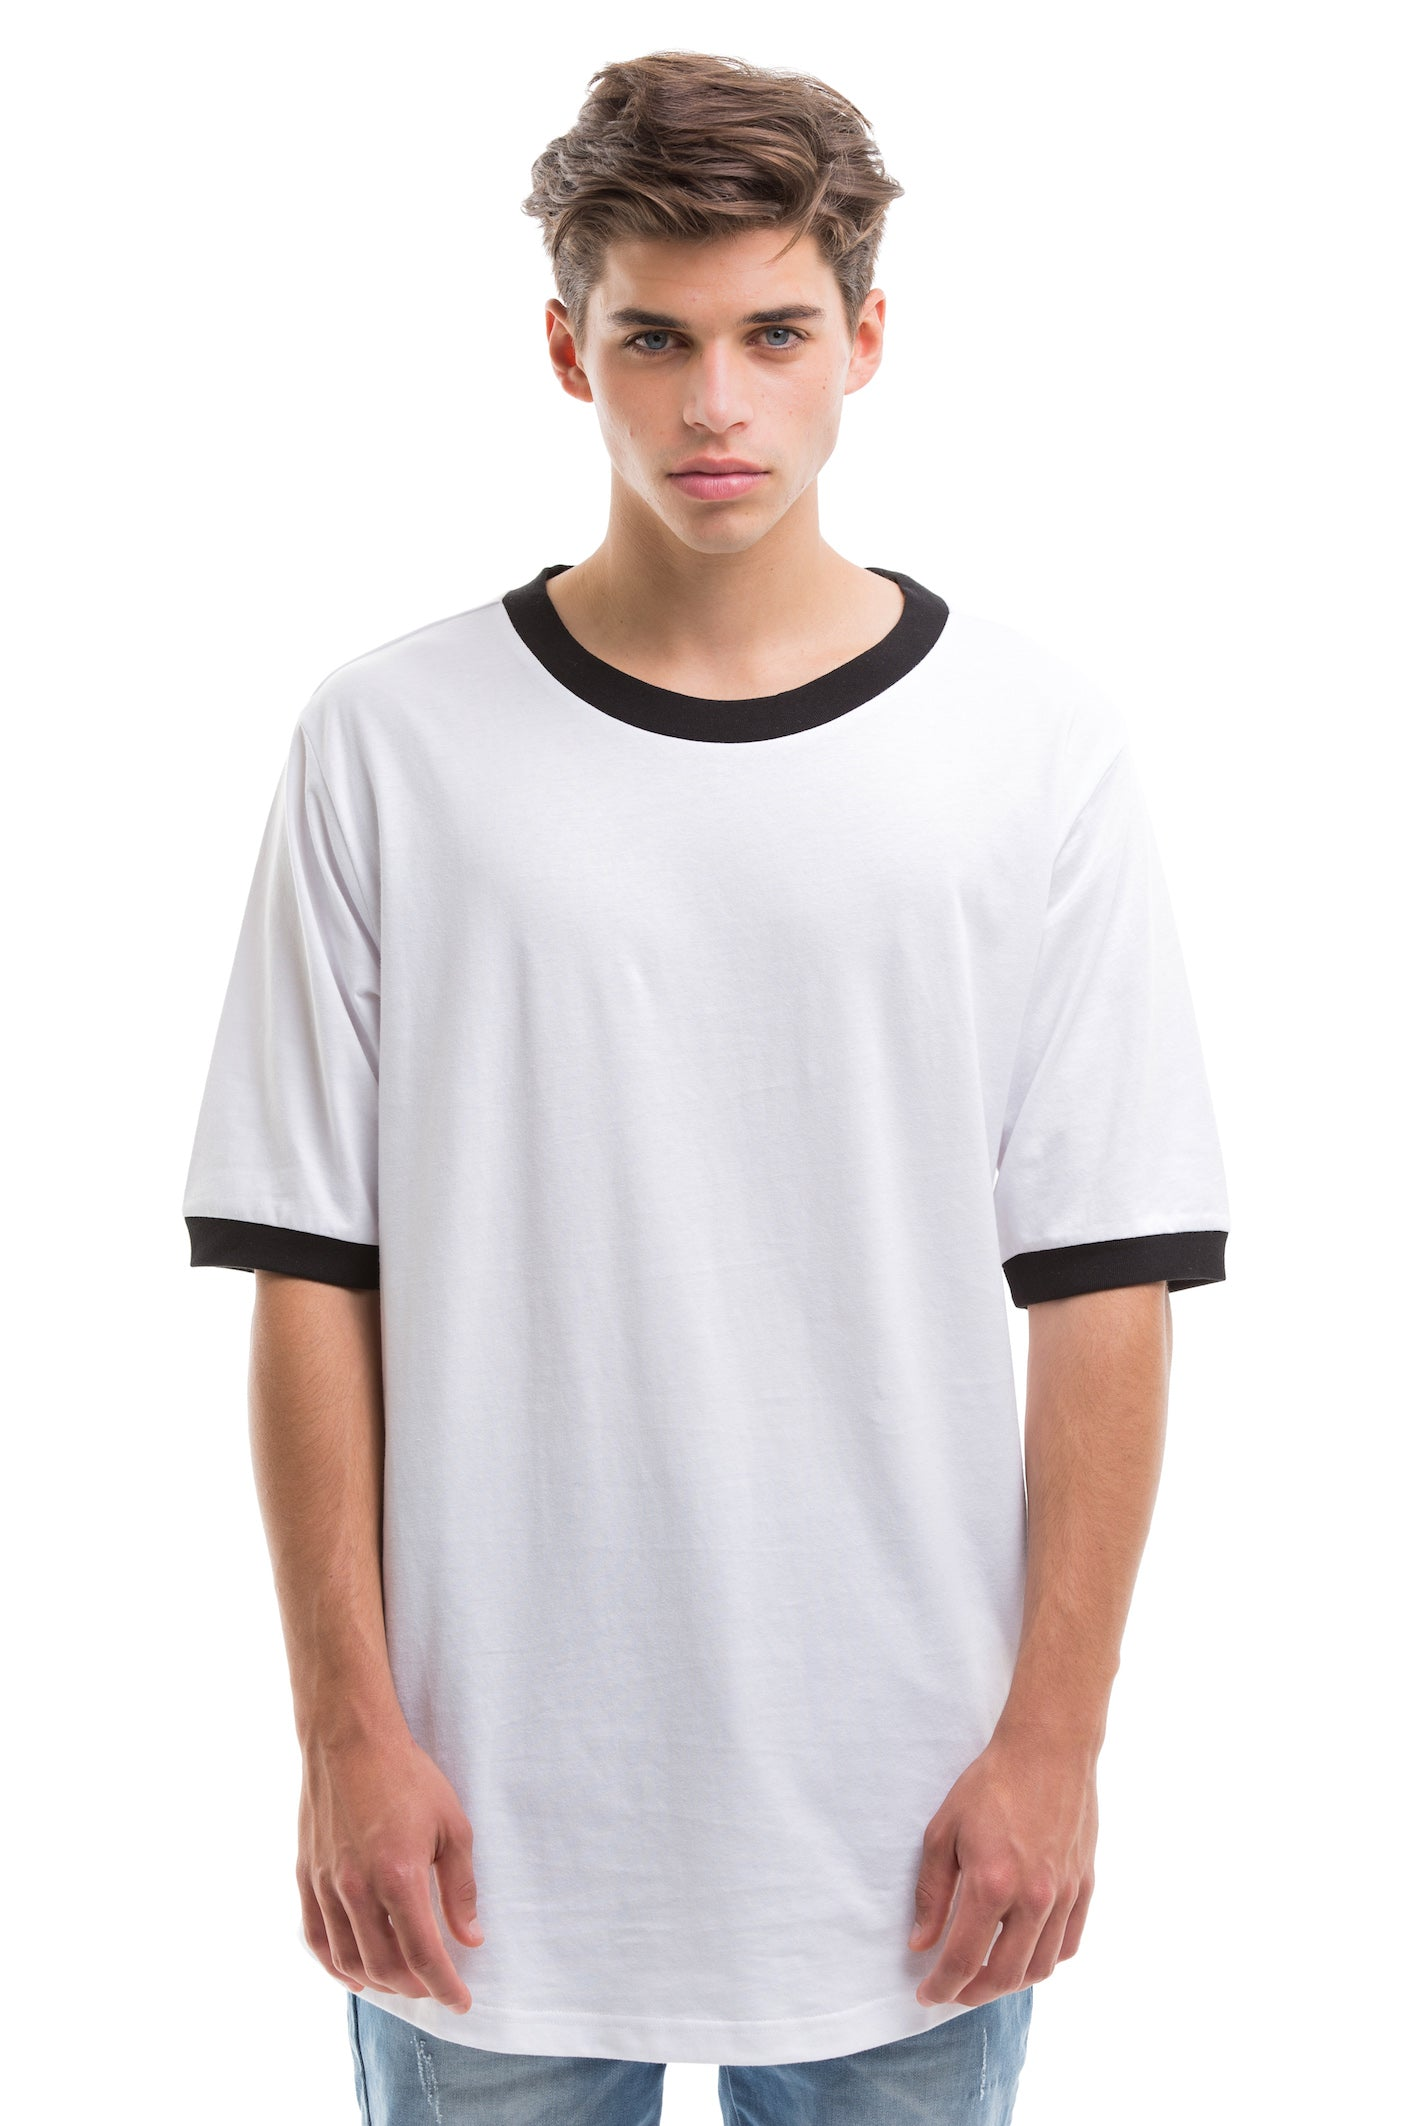 Scoop Cut Short Sleeve - WHITE